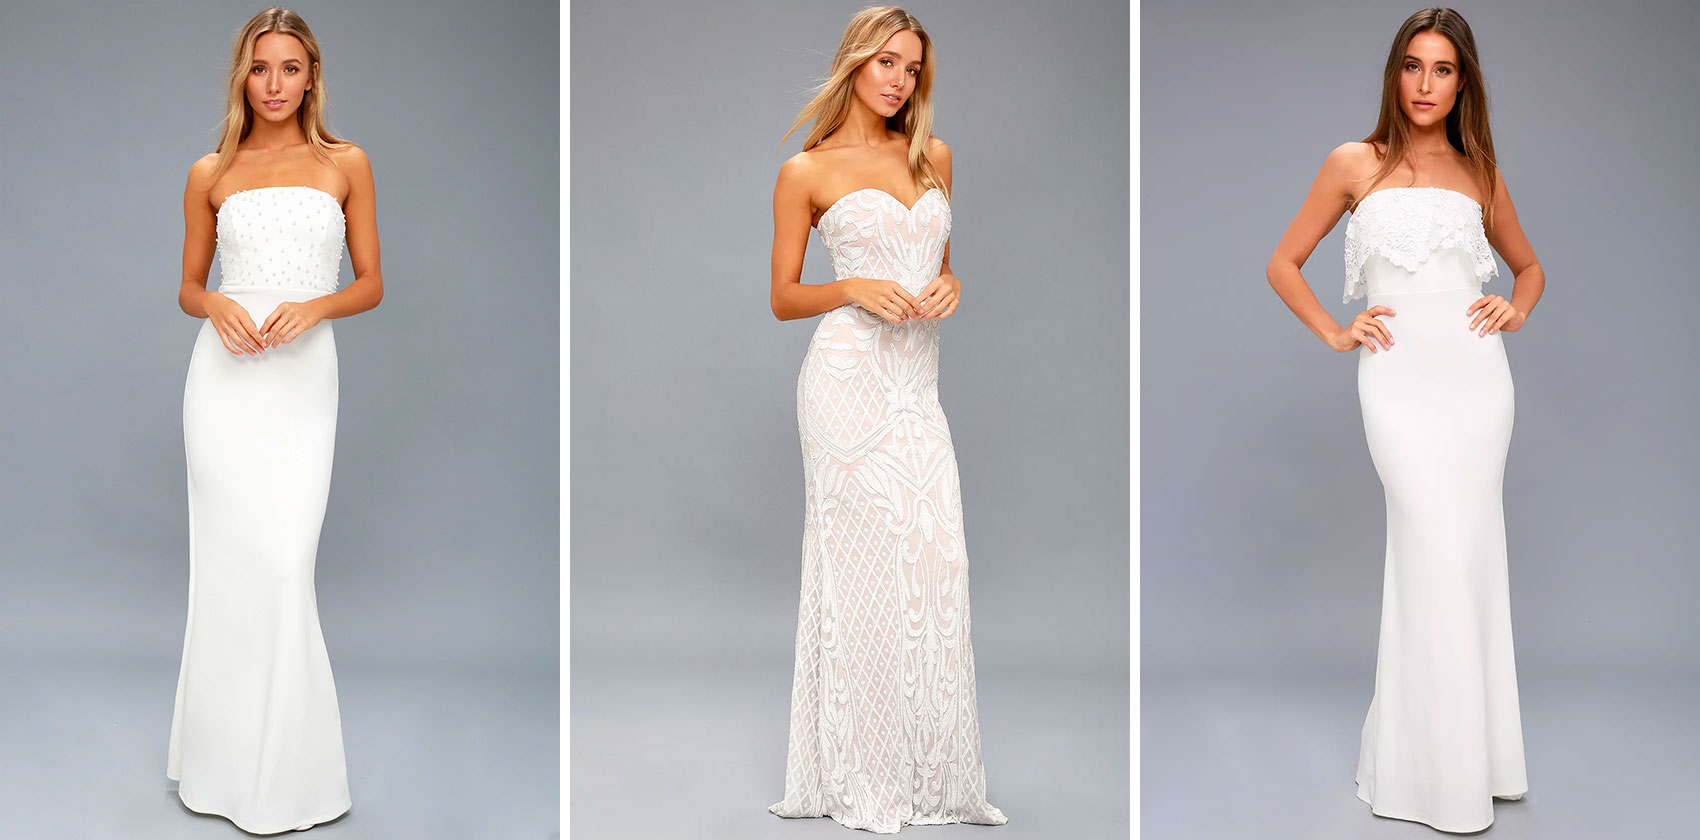 5e57fe39abed We are also obsessed with the effortless Crazy About You White Backless  Lace Maxi Dress. The combination of the open back along with a mock neck  and cap ...